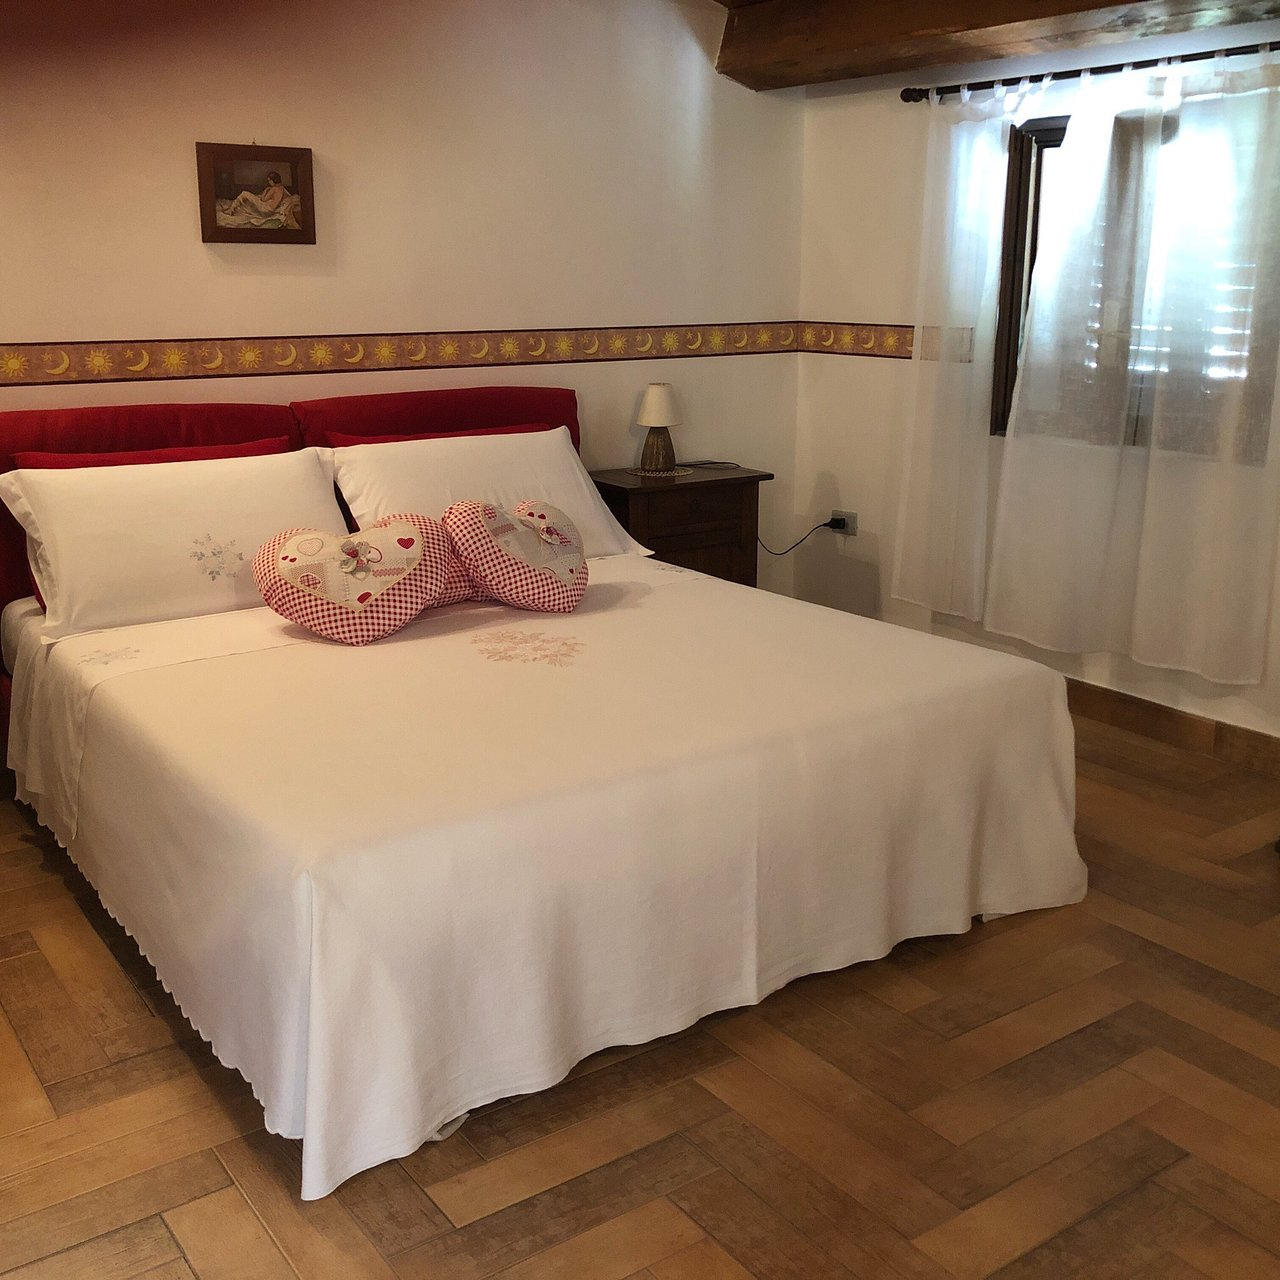 Hotel Camino Vecchio Fossato Di Vico Gc House 56 62 Prices B B Reviews Gualdo Tadino